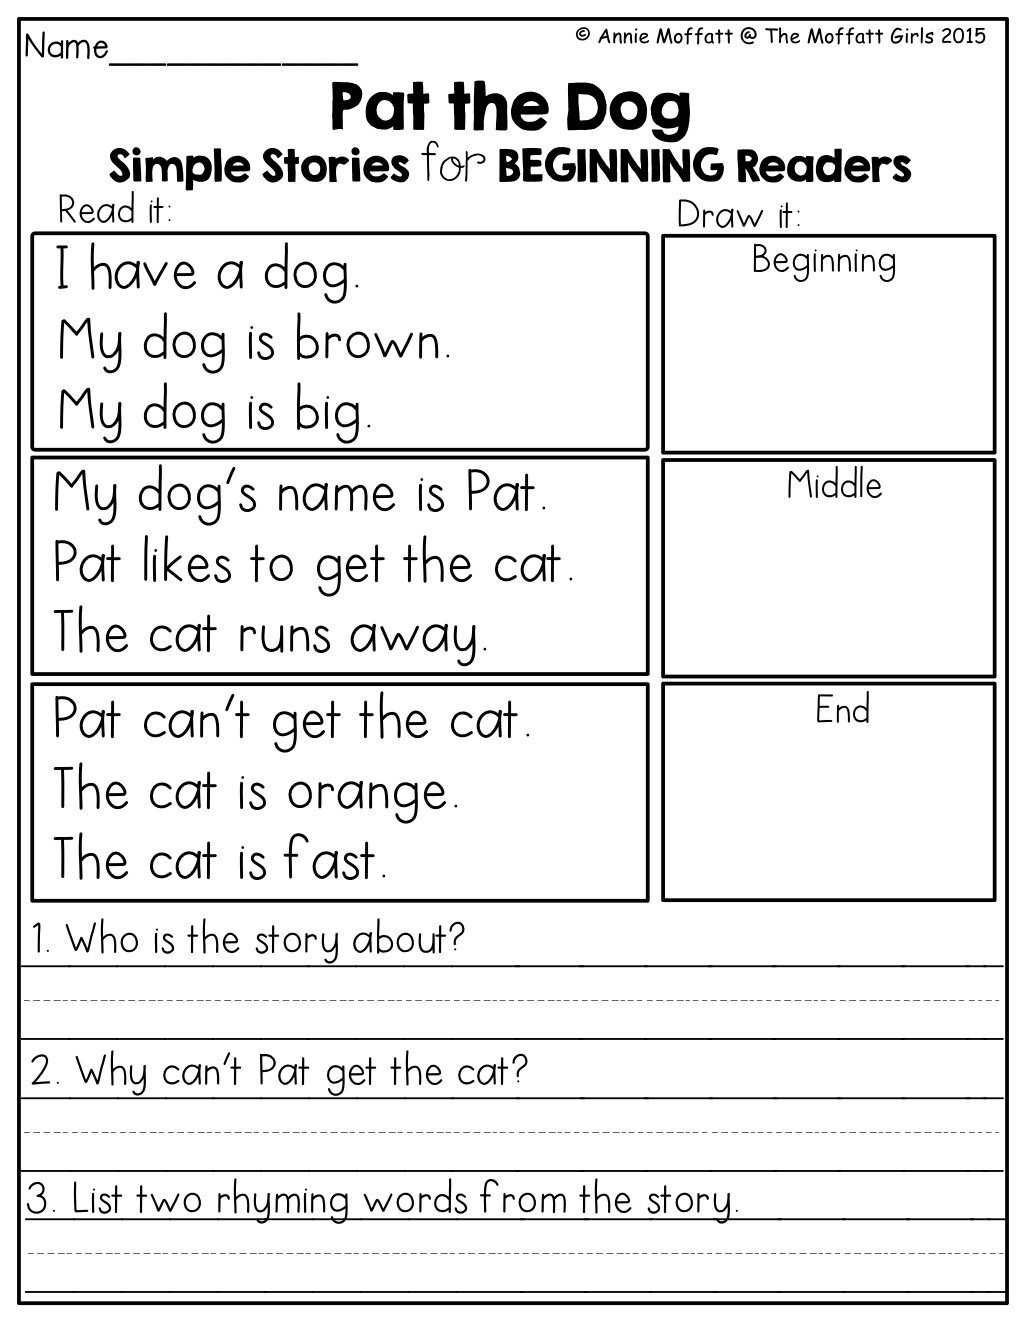 Sequencing Practice Worksheet Middle School